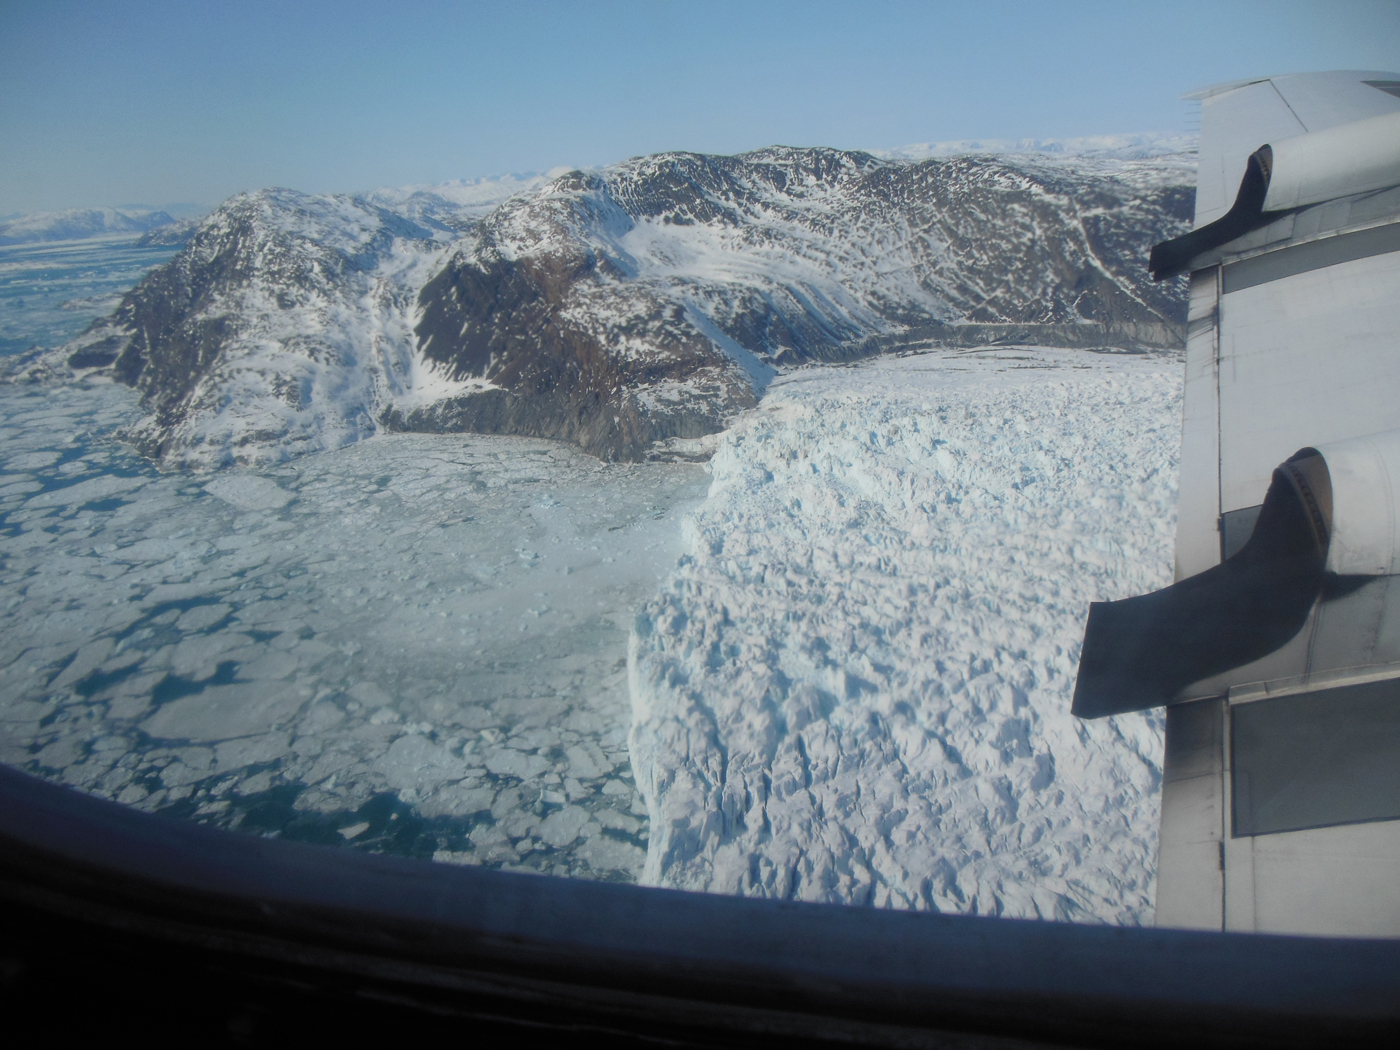 An image of a glacier's calving front, where it flows and loses ice to the sea.